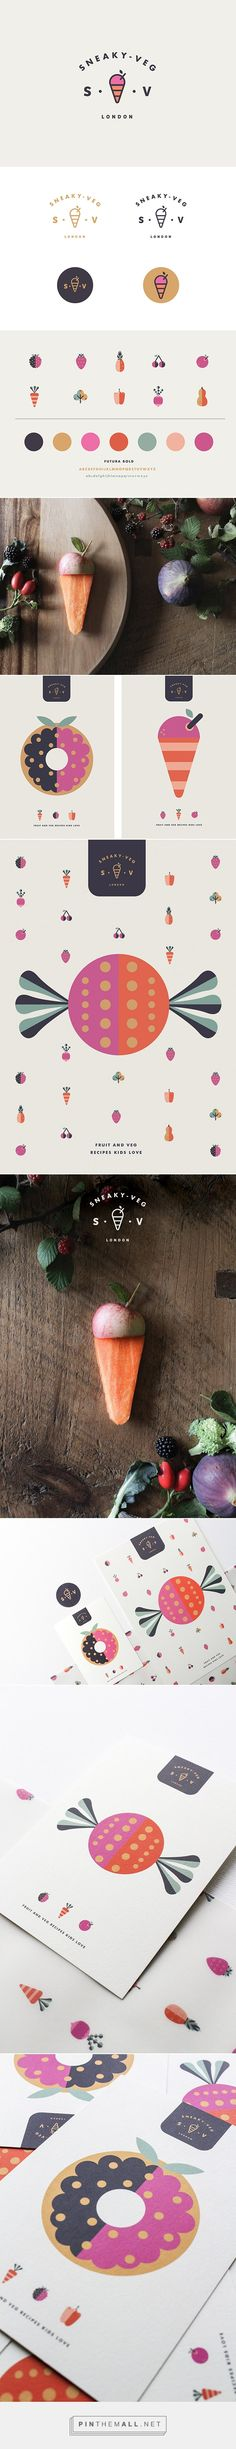 Sneaky Veg Brand Identity on Behance.